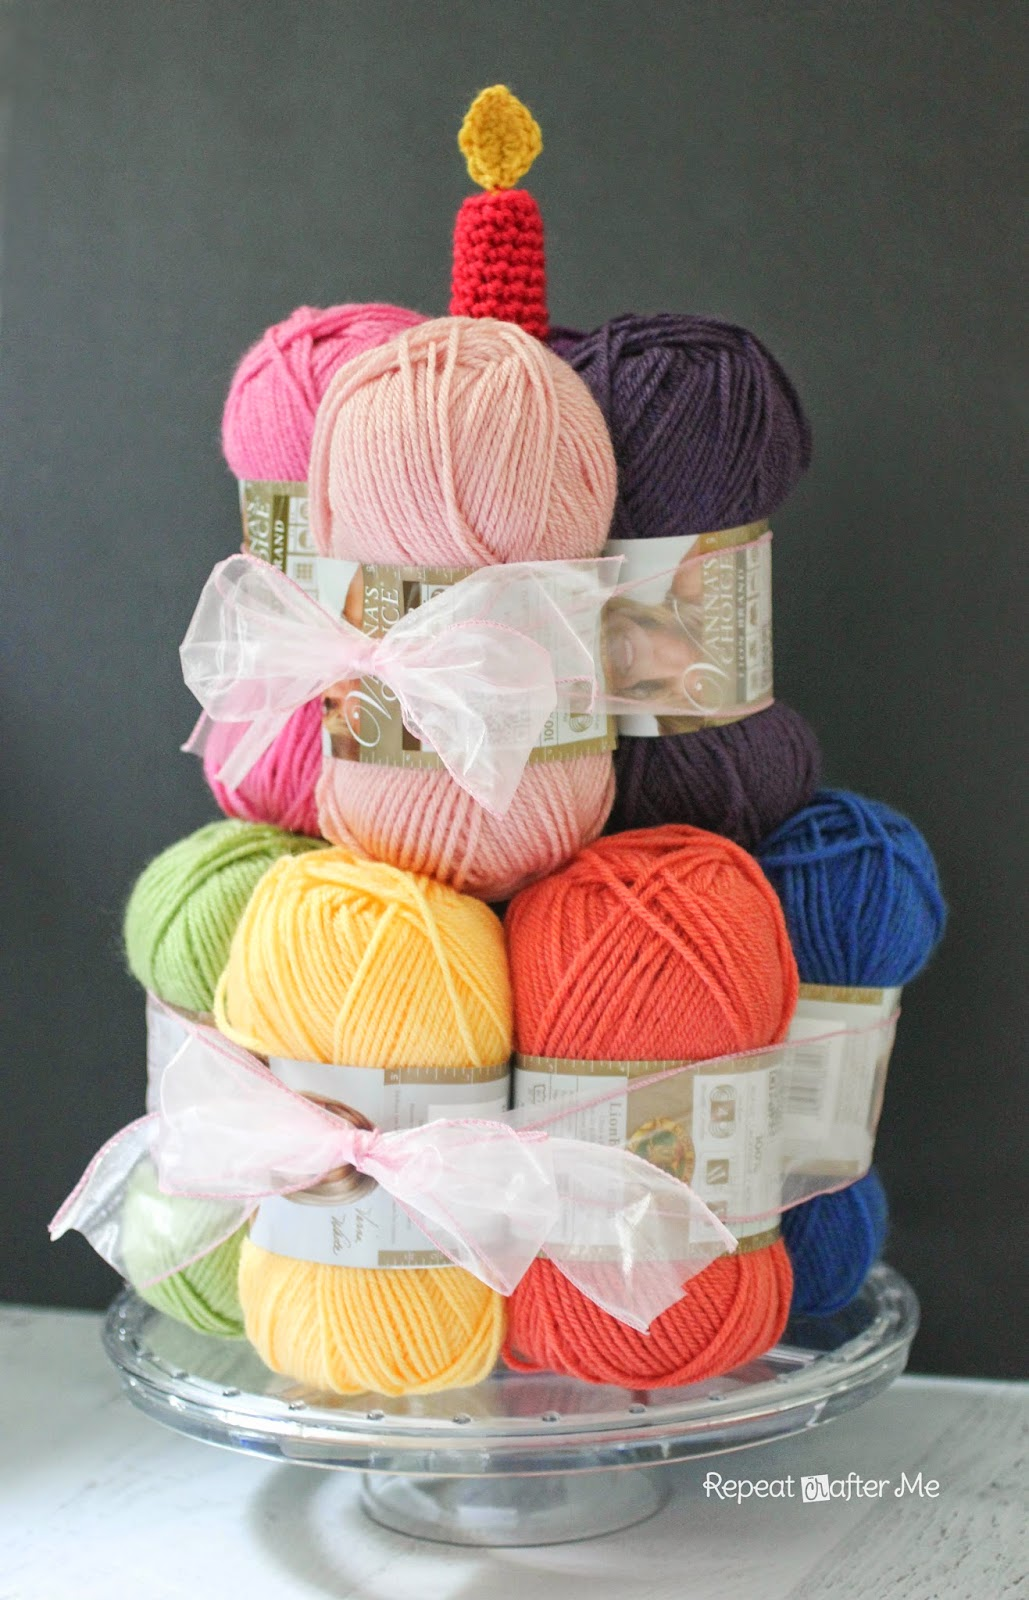 Knitting Birthday Meme : Repeat crafter me yarn cake with a crochet candle